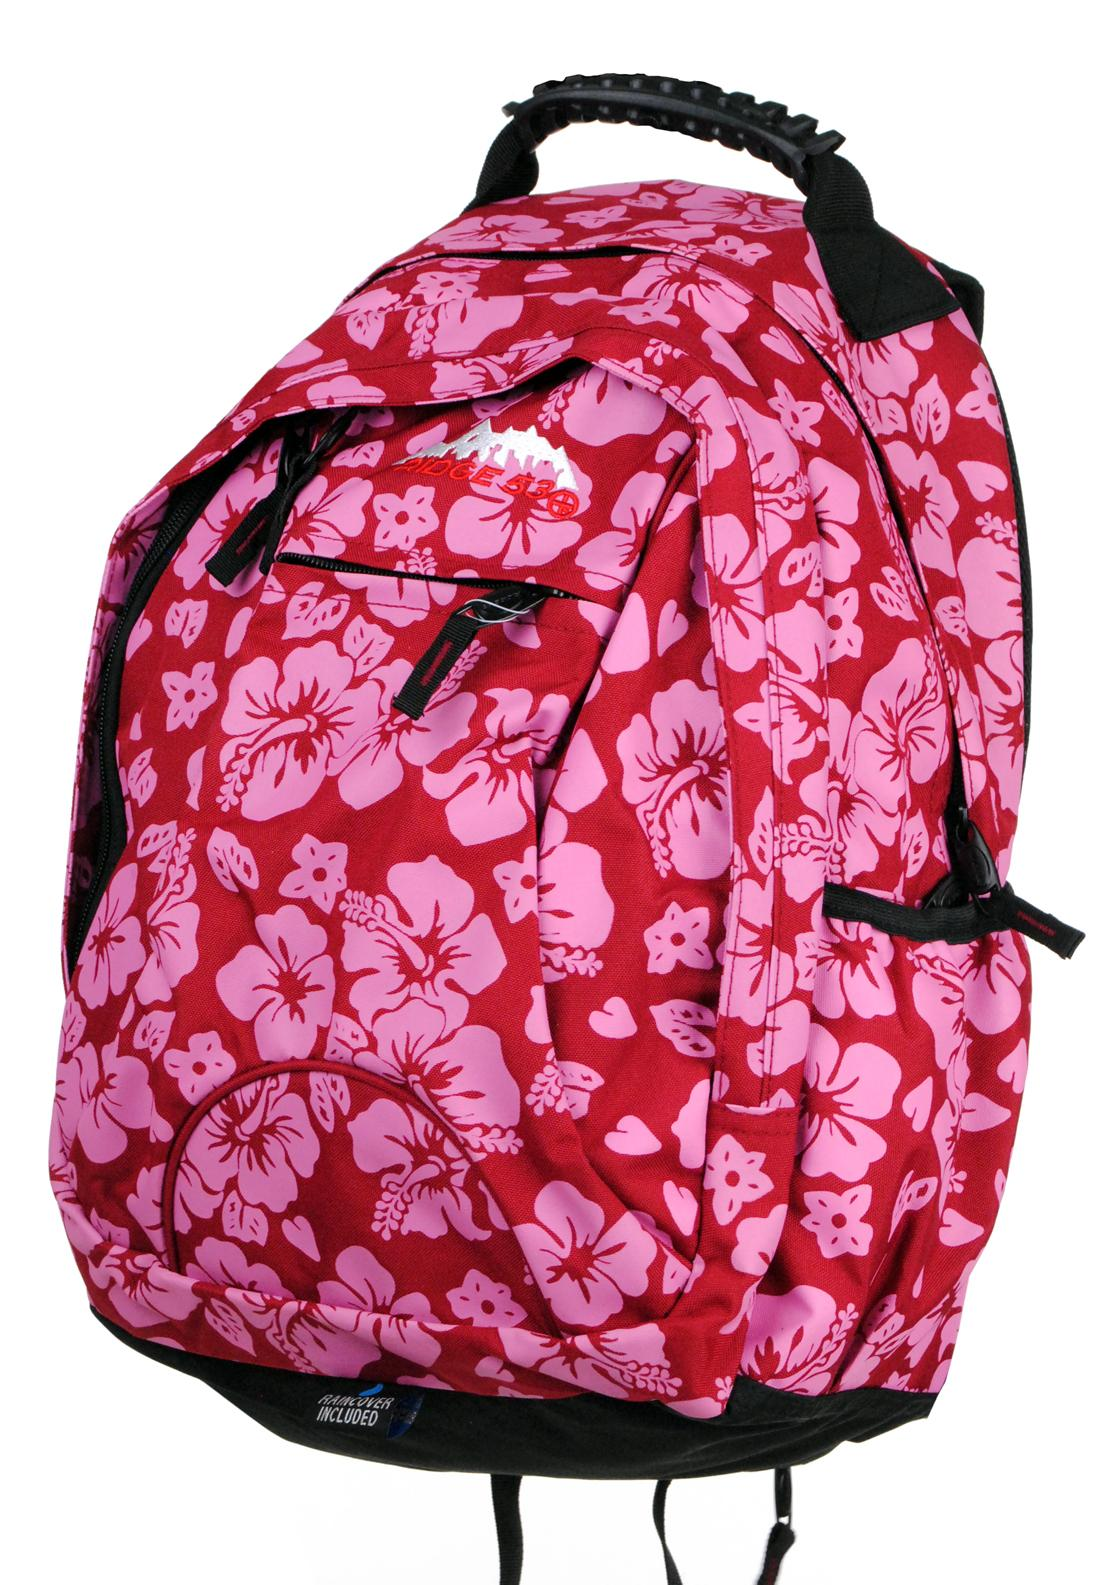 Ridge 53 Abbey Backpack School Bag, Red / Pink